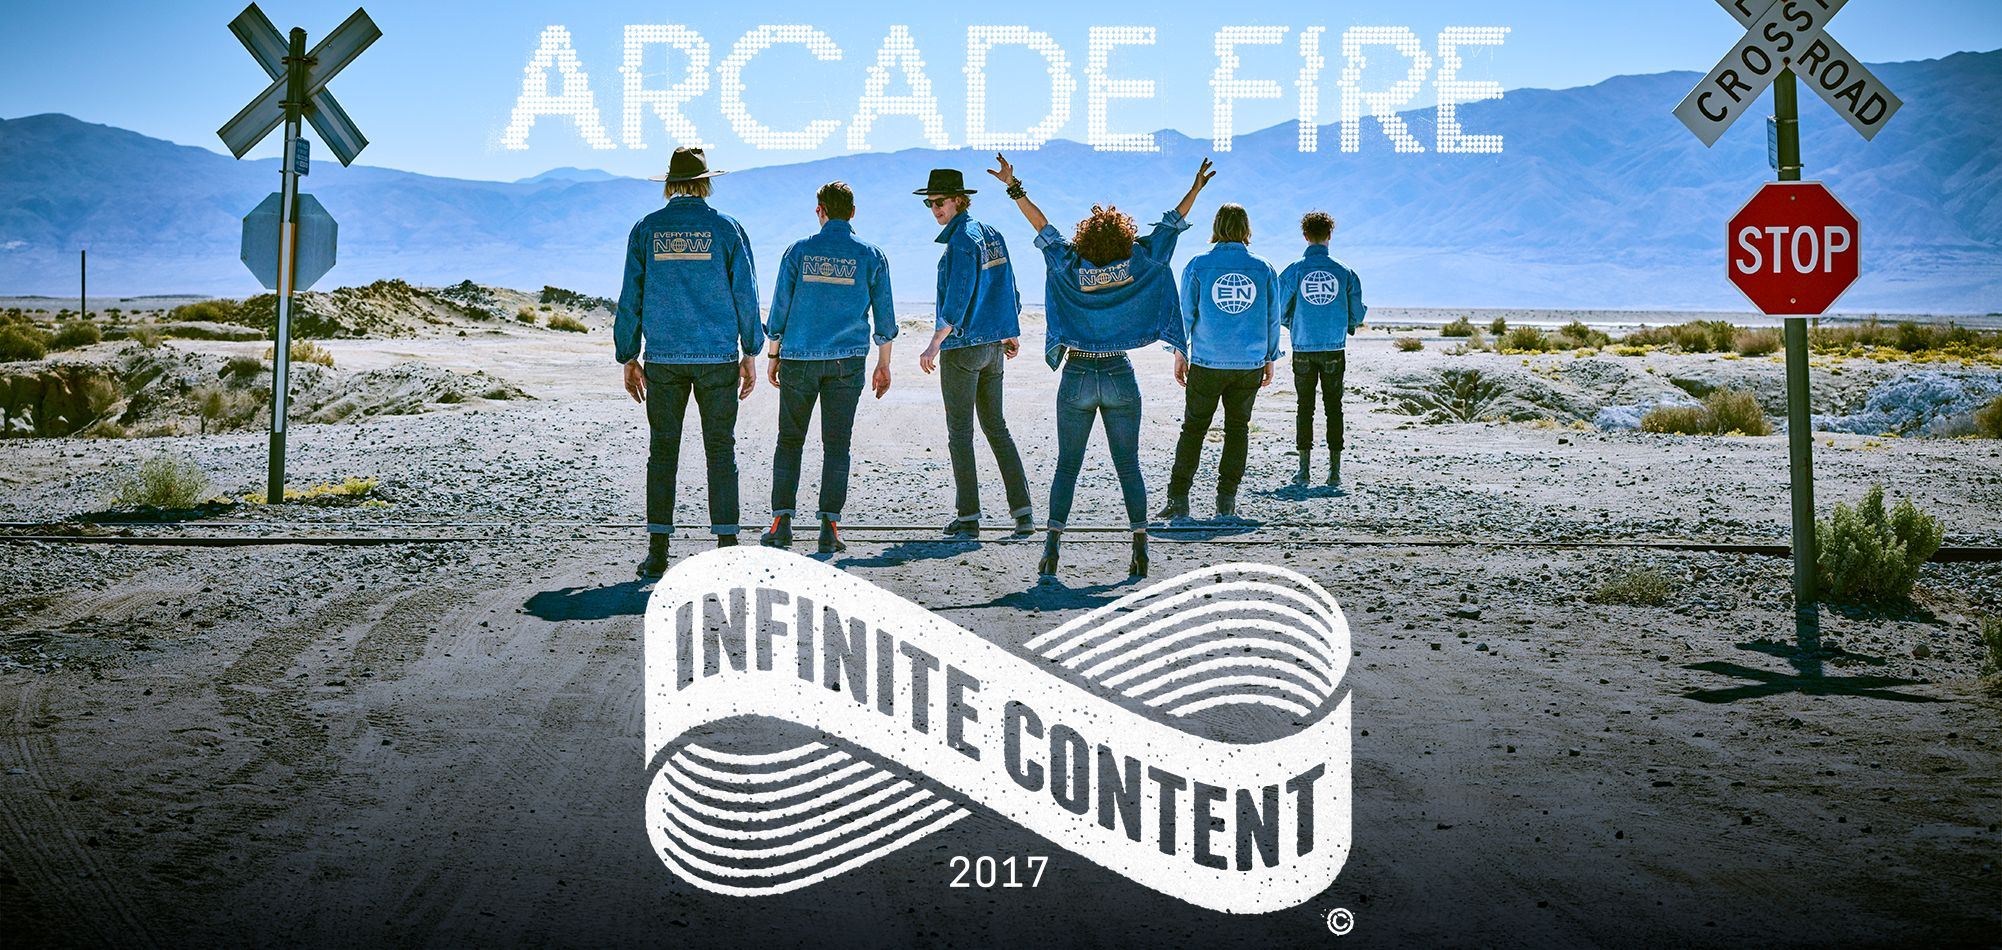 arcade fire to bring infinite content tour across north capital